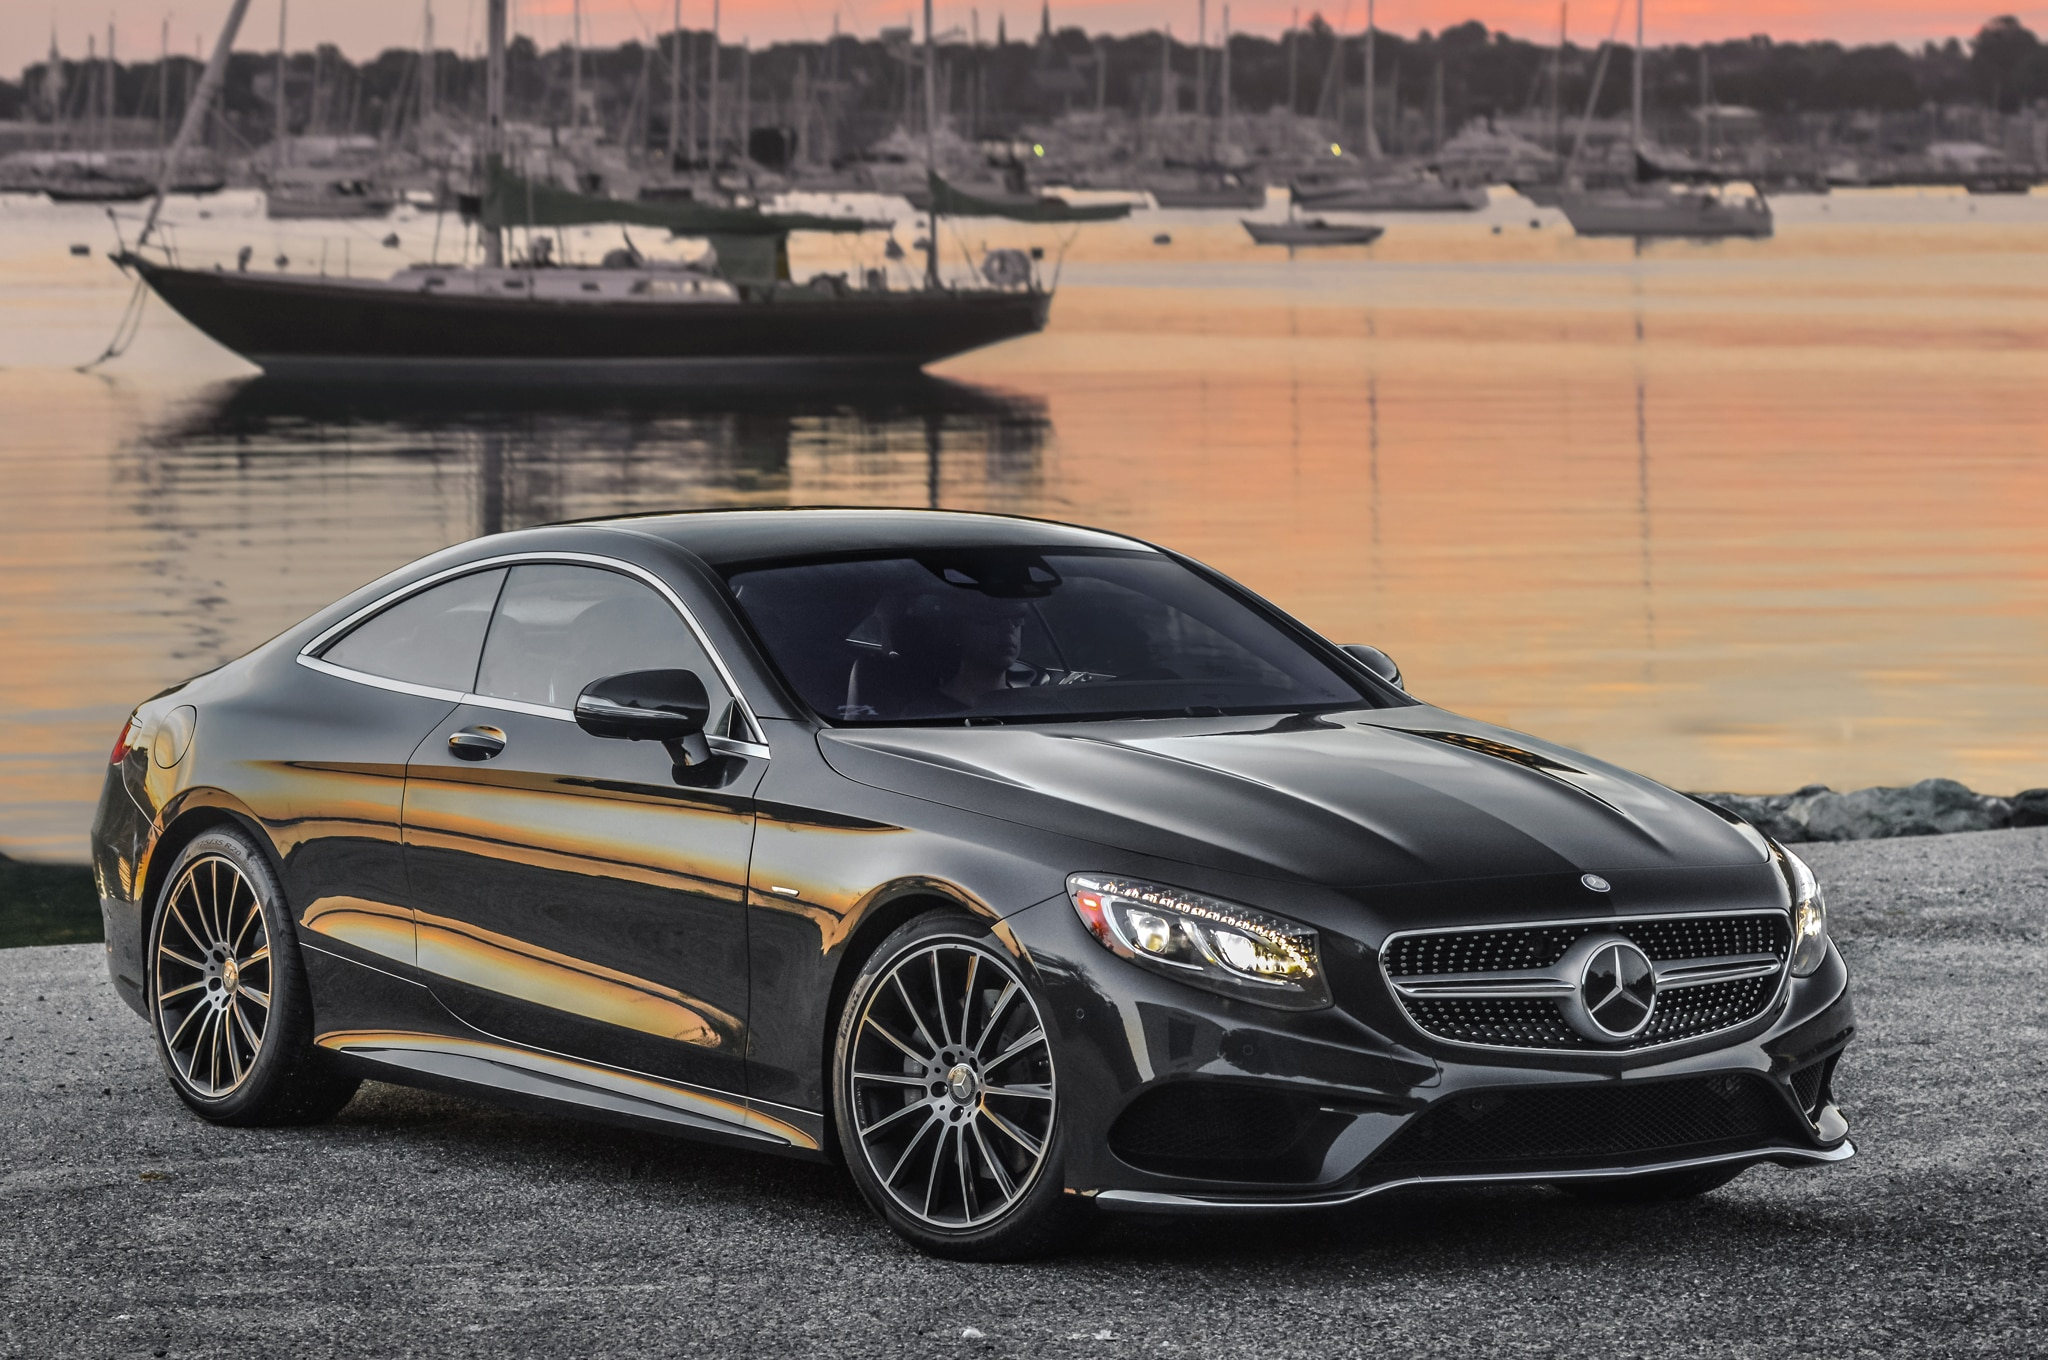 https://st.automobilemag.com/uploads/sites/11/2015/07/2015-Mercedes-Benz-S550-4Matic-Coupe-front-three-quarter-05.jpg